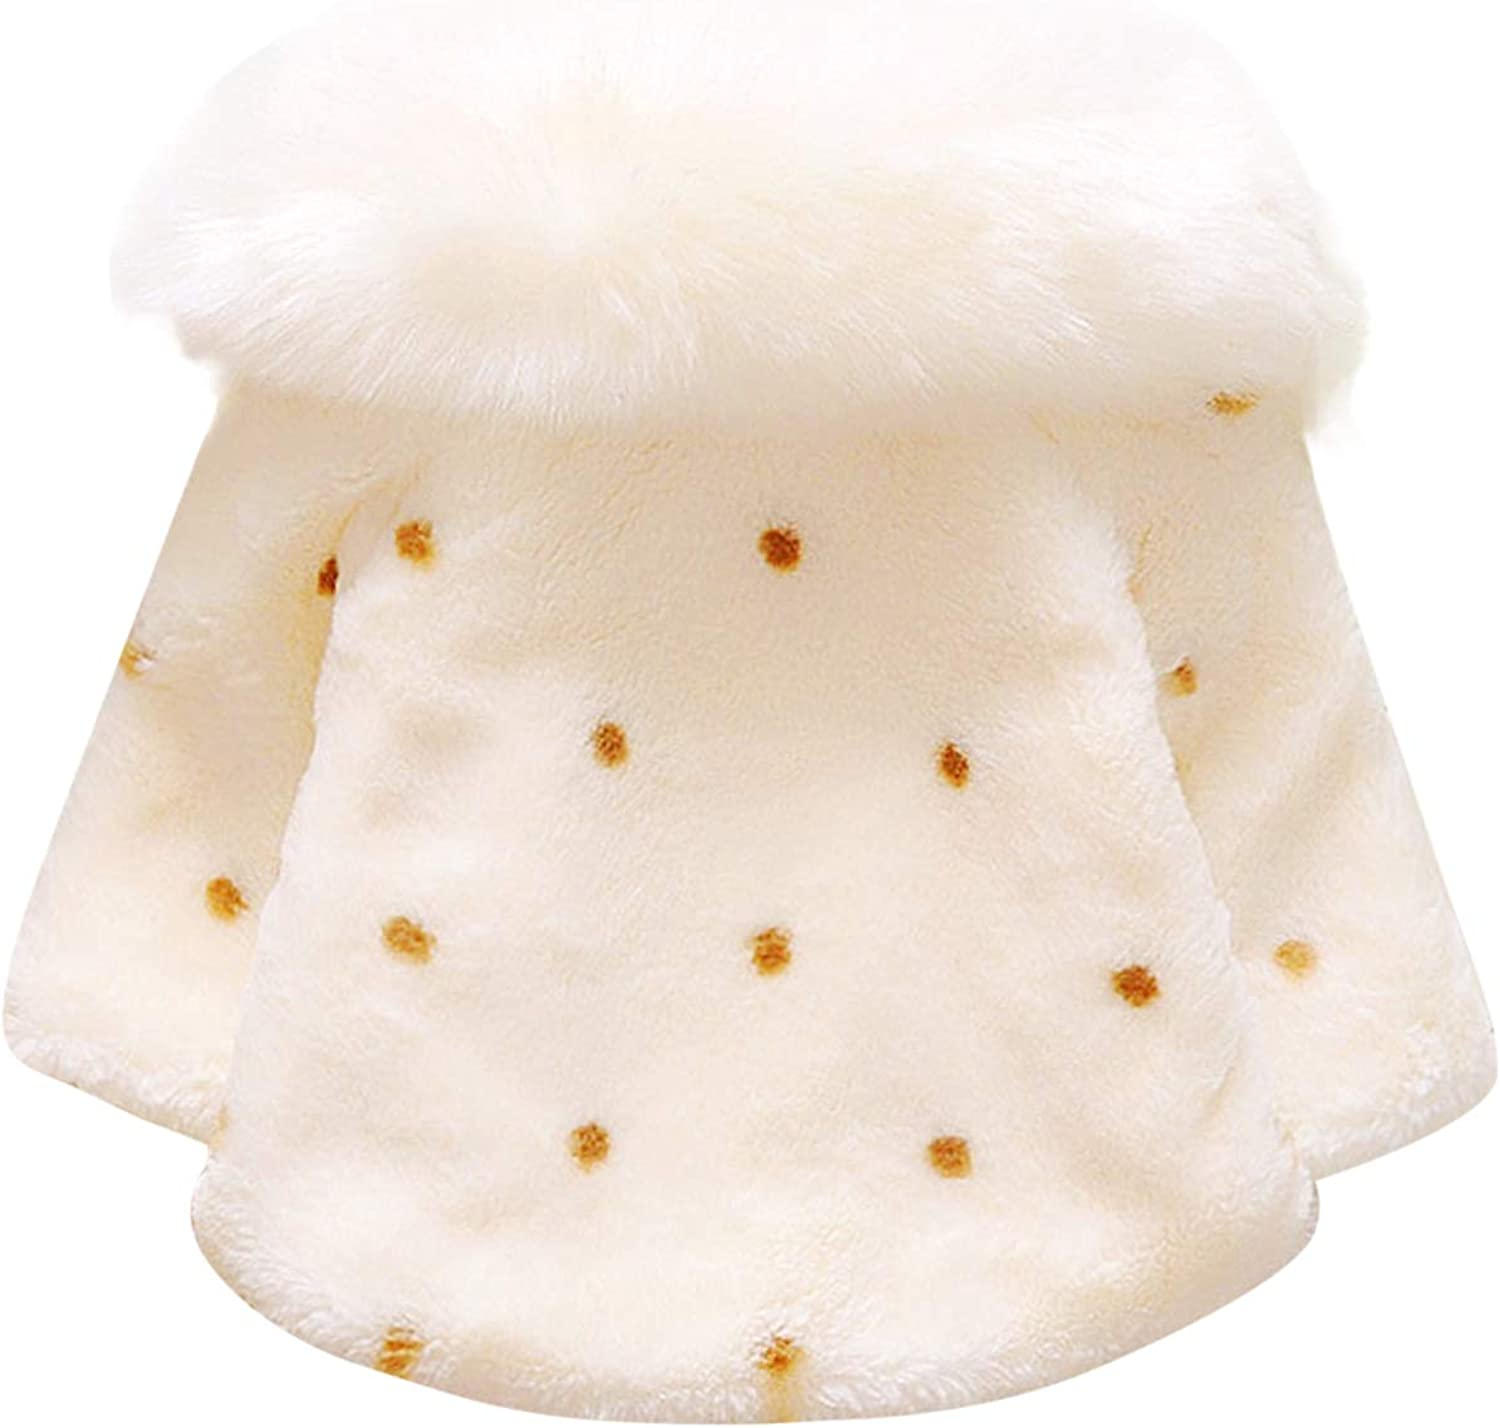 De feuilles Baby Jacke Fell Kragen Pelzkragen Coat Warm Weich Winterjacke Warm Outwear Faux Pelz Warm Winter Cape Cloak Mantel Outwear mit Perlen Bommeln Schleifen Wintermantel